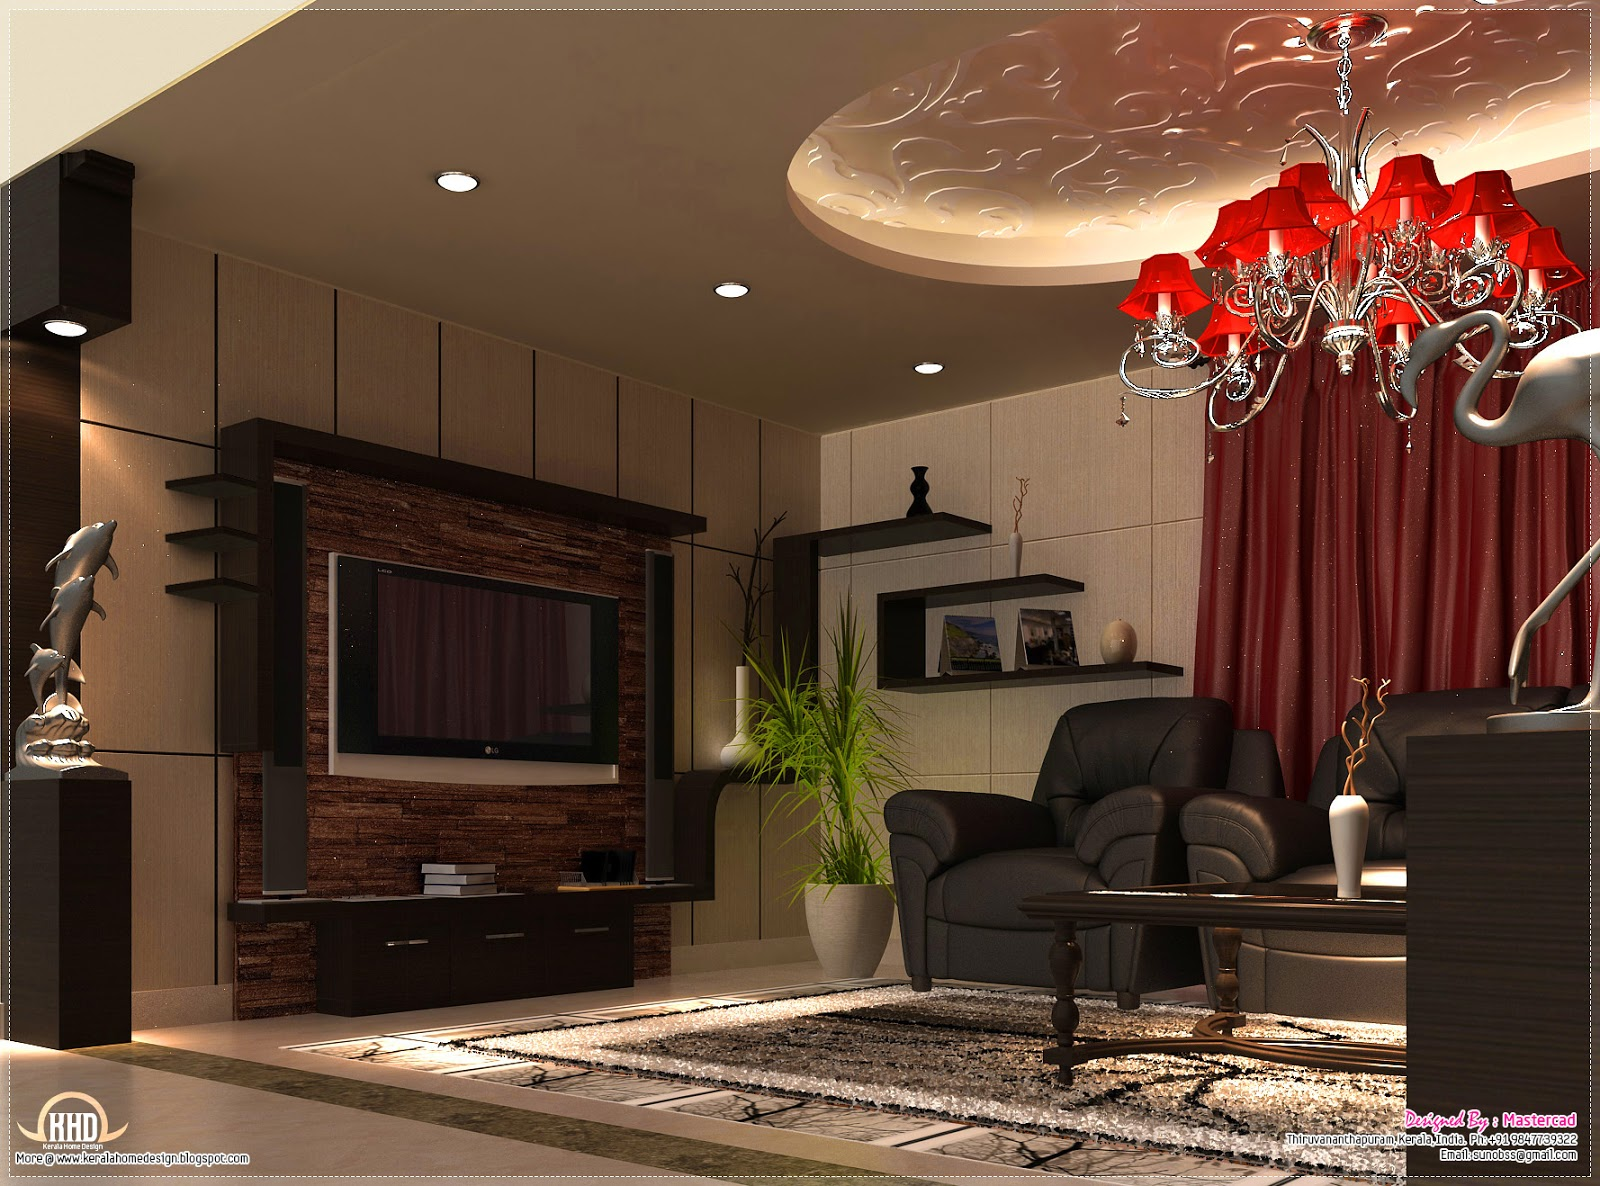 Interior design ideas kerala home design and floor plans for Living room designs kerala style